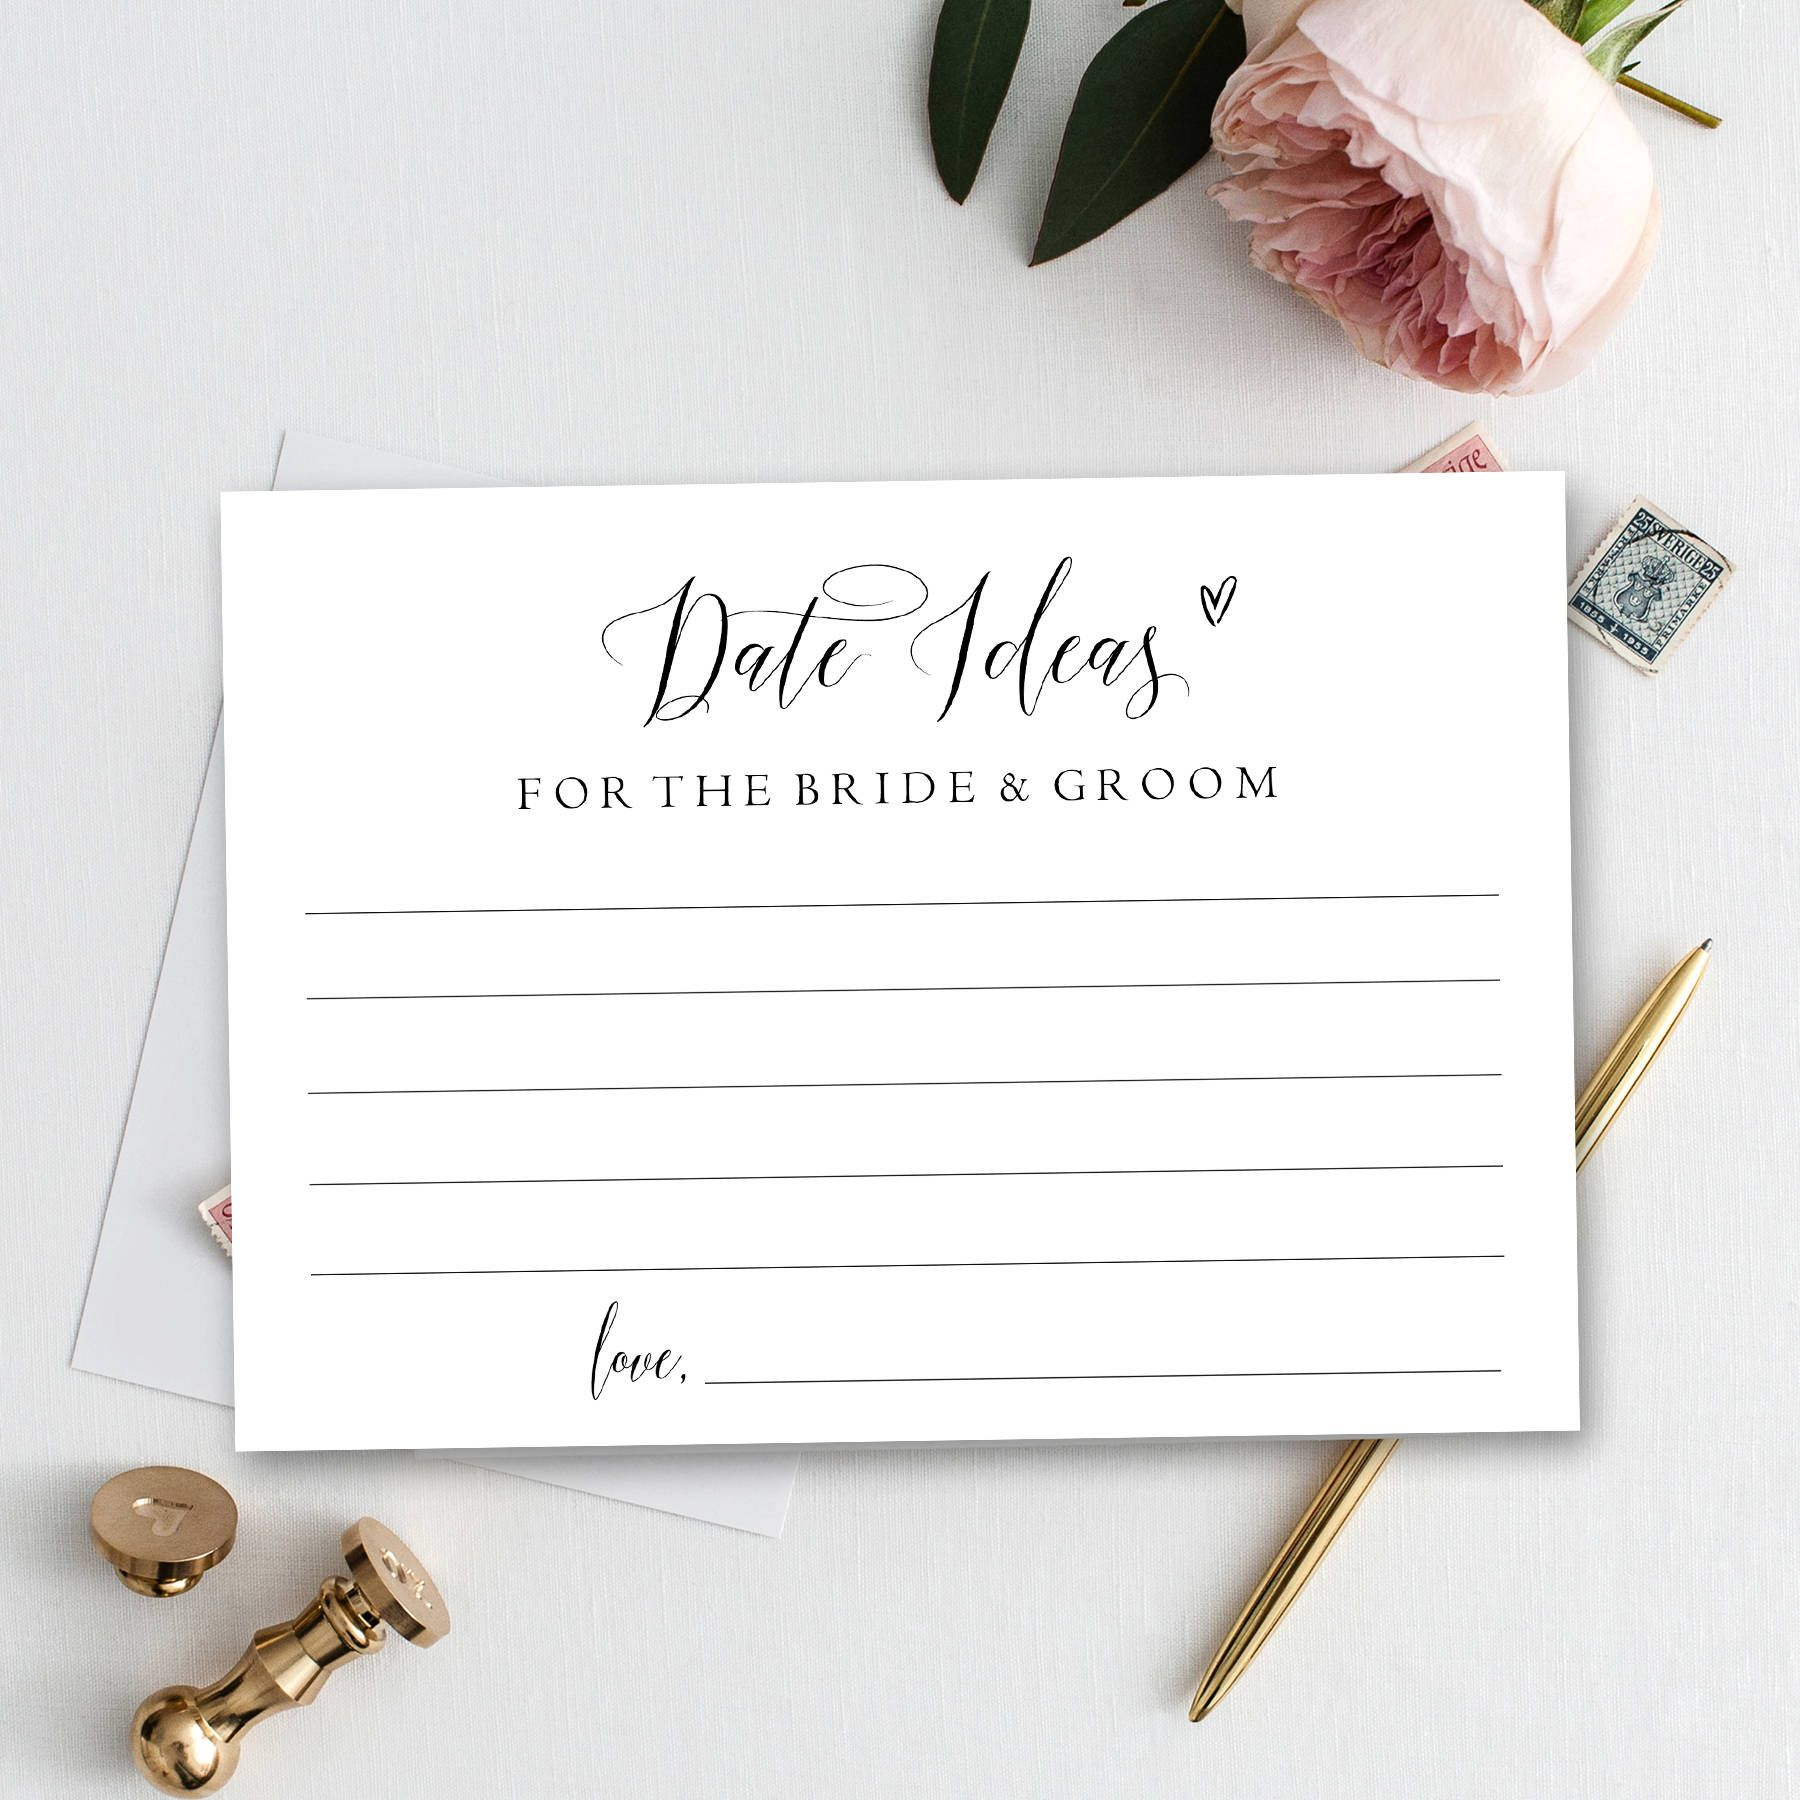 Dating idea cards